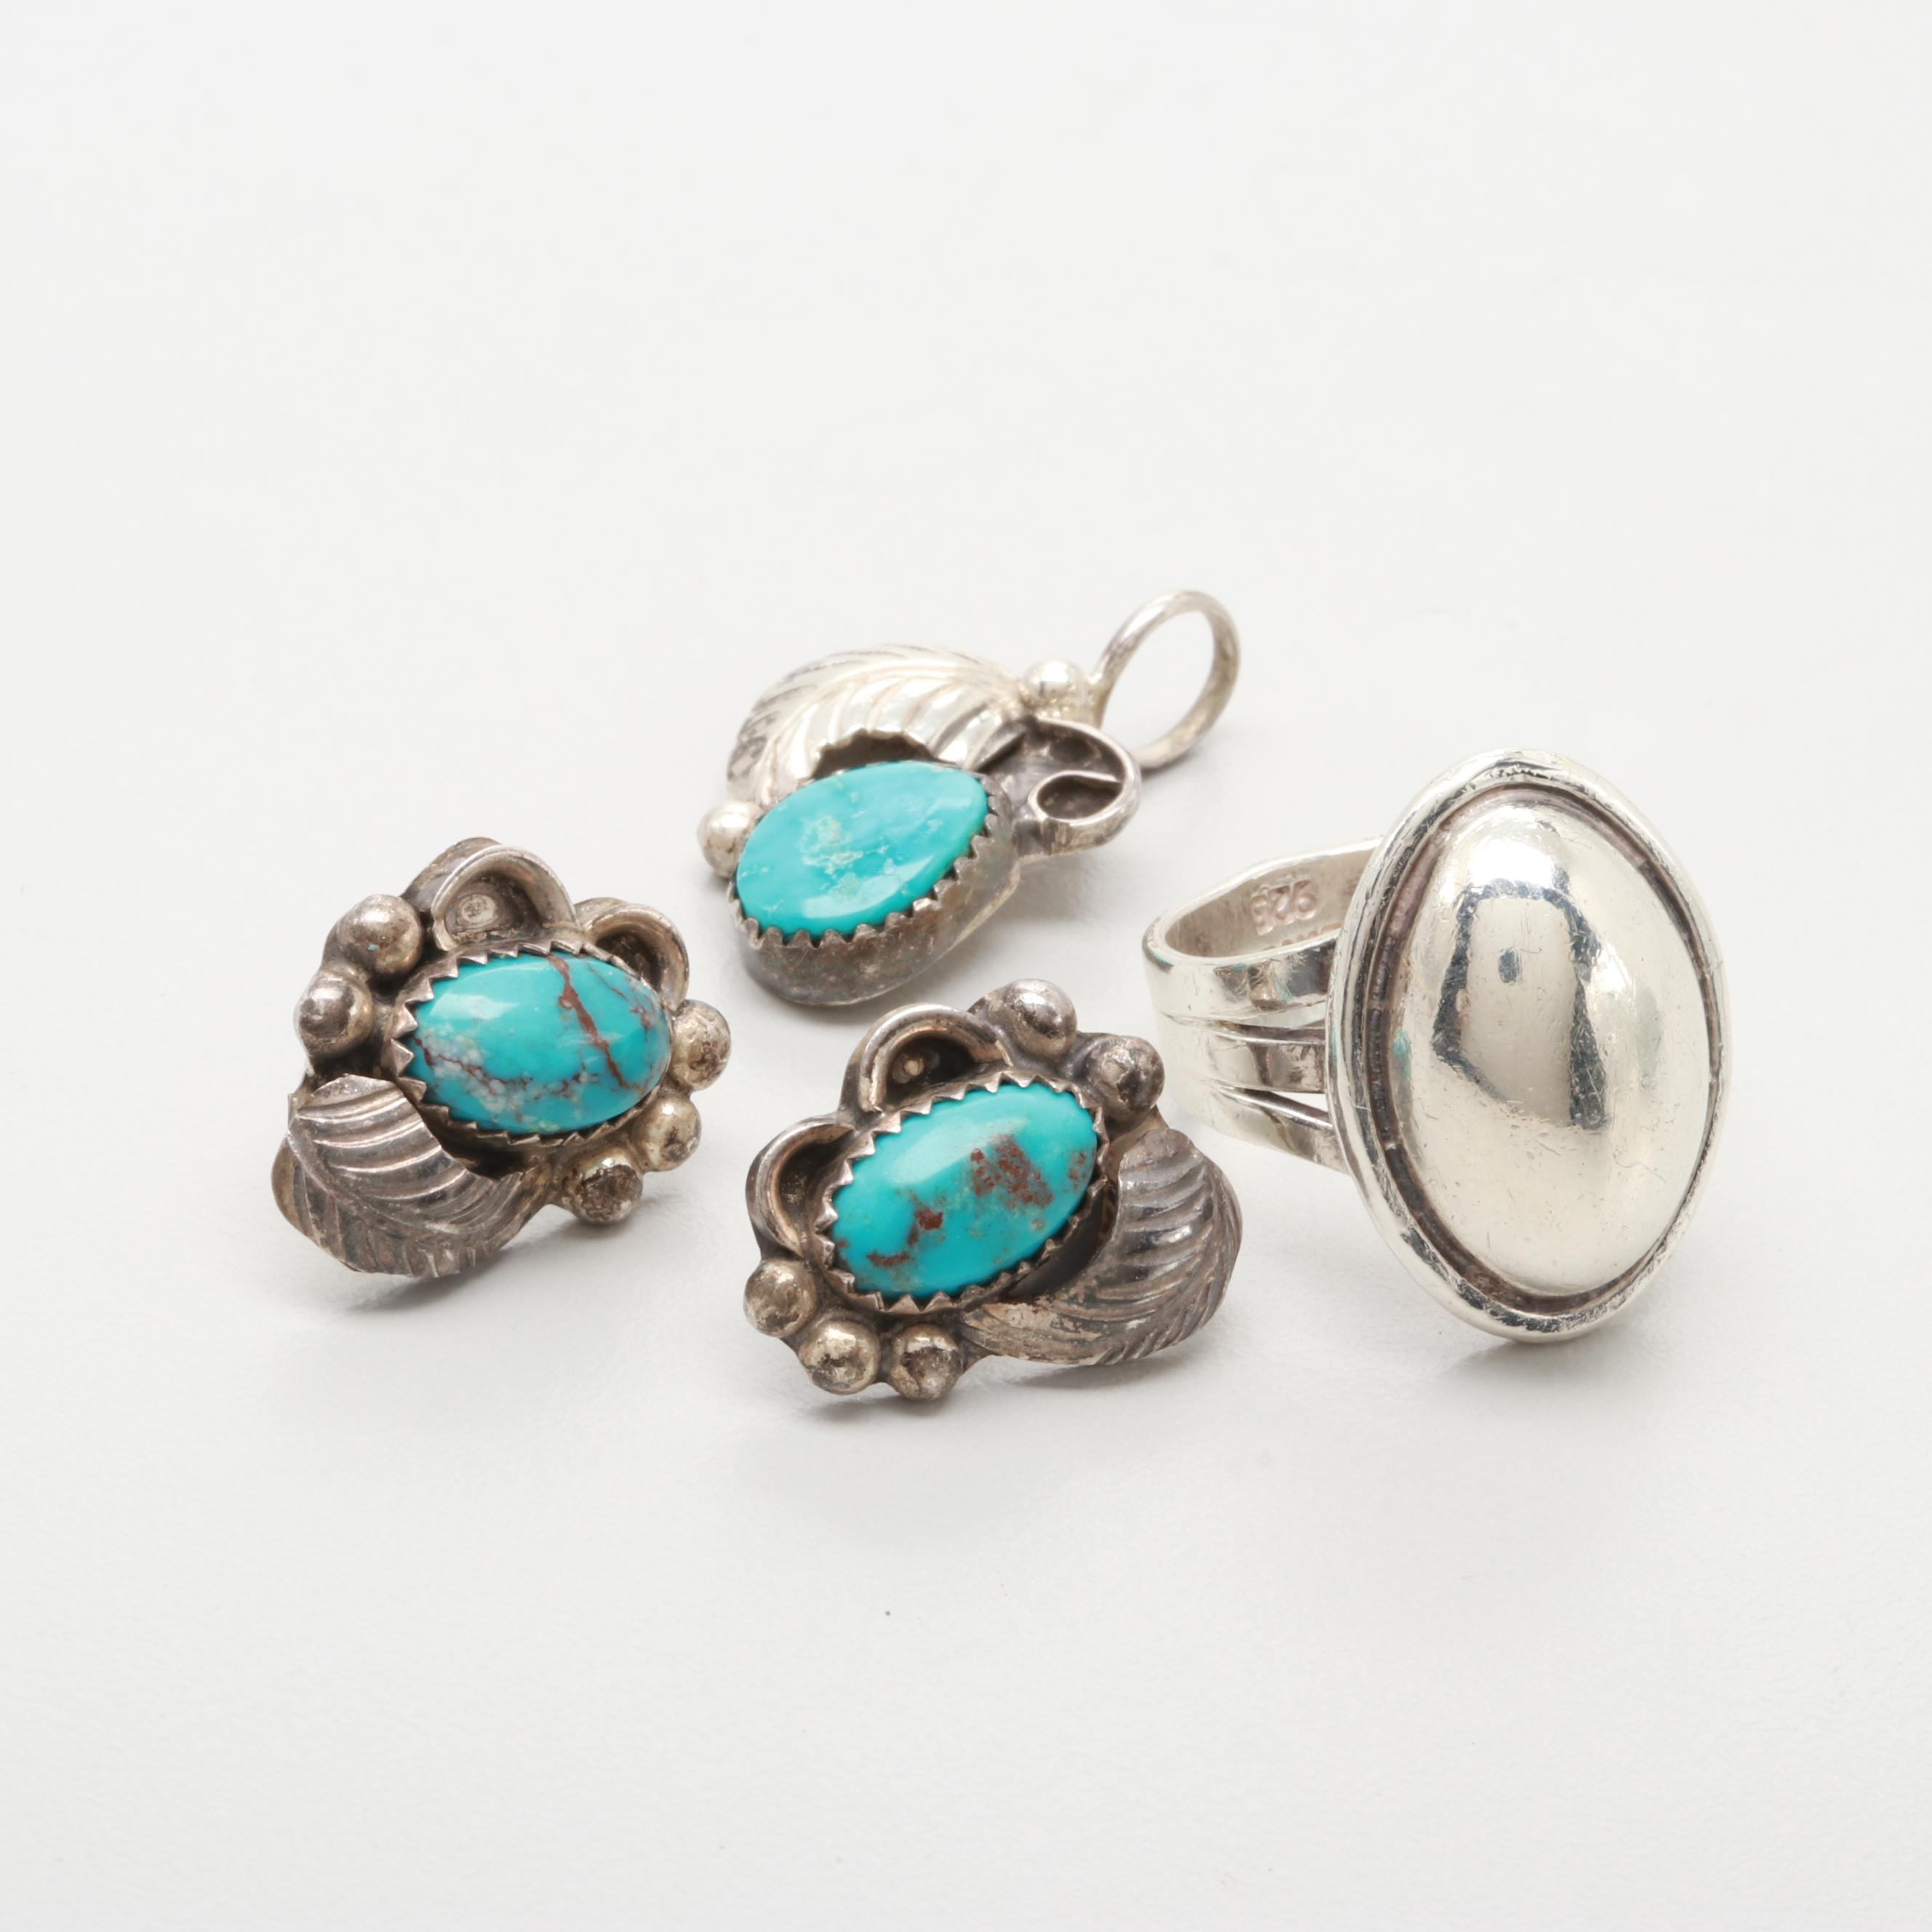 Sterling Silver Jewelry with Angeline Miller Navajo Diné Turquoise Earrings